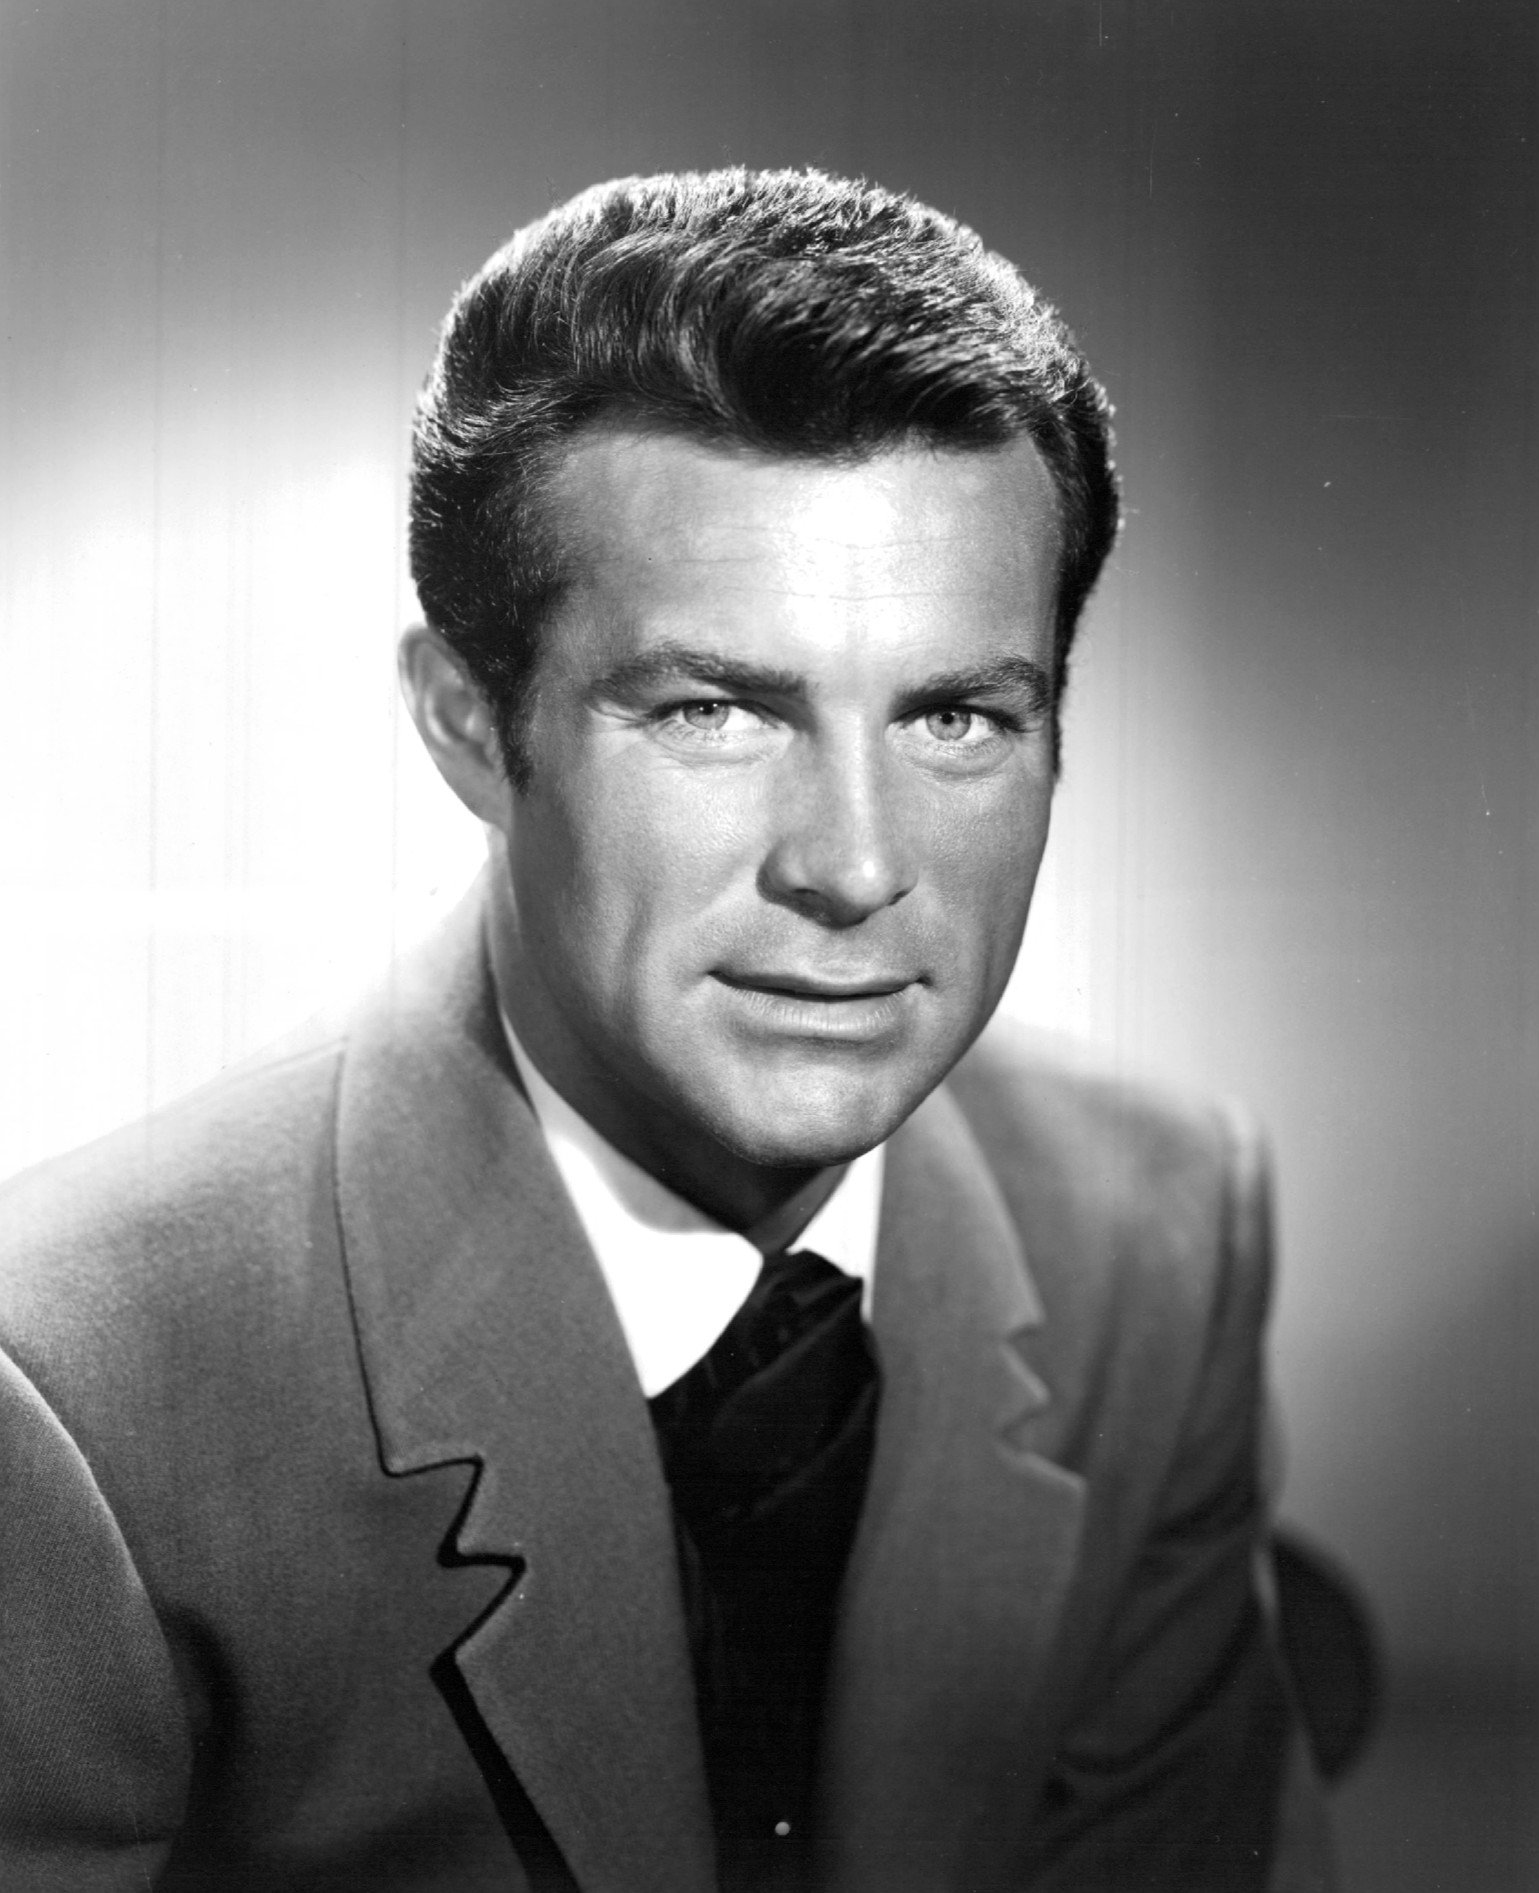 A portrait of Robert Conrad, 1965 | Source: Wikimedia Commons